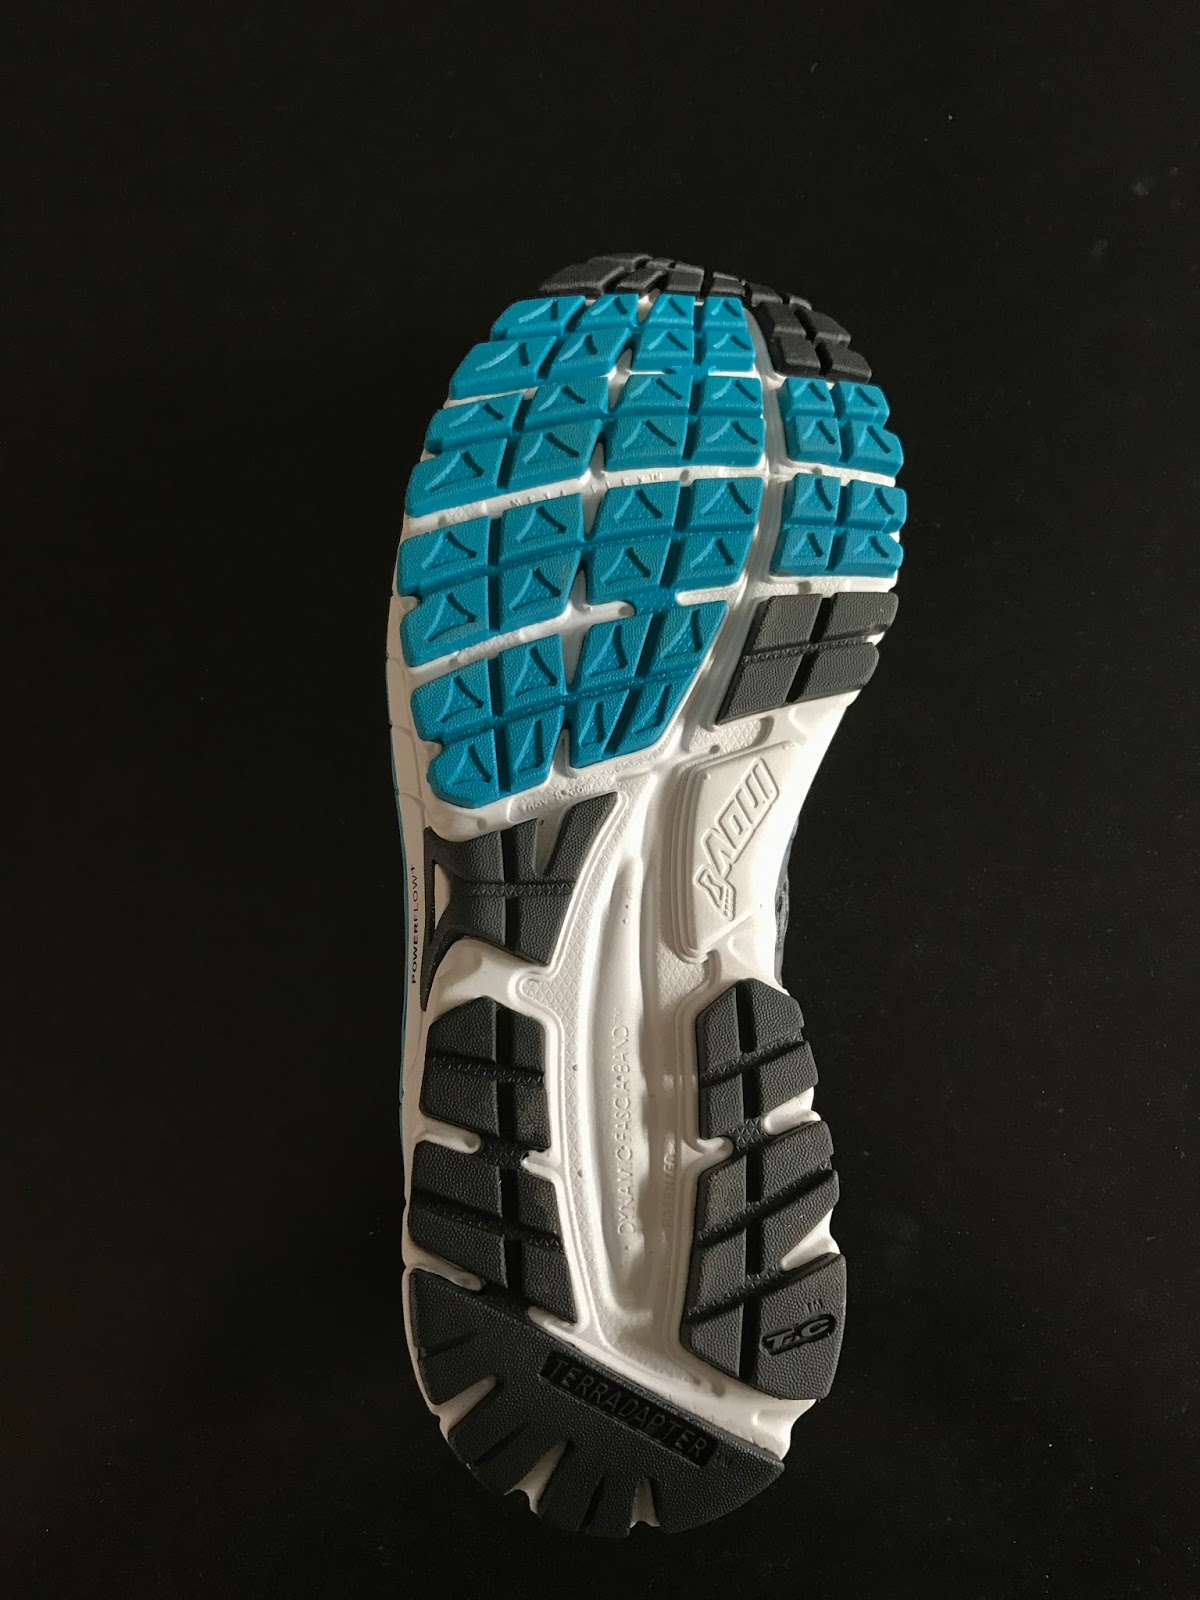 71641bebfee The outsole features Inov-8 Tri-C system with 3 densities of rubber  firm  high wear black heel and toe